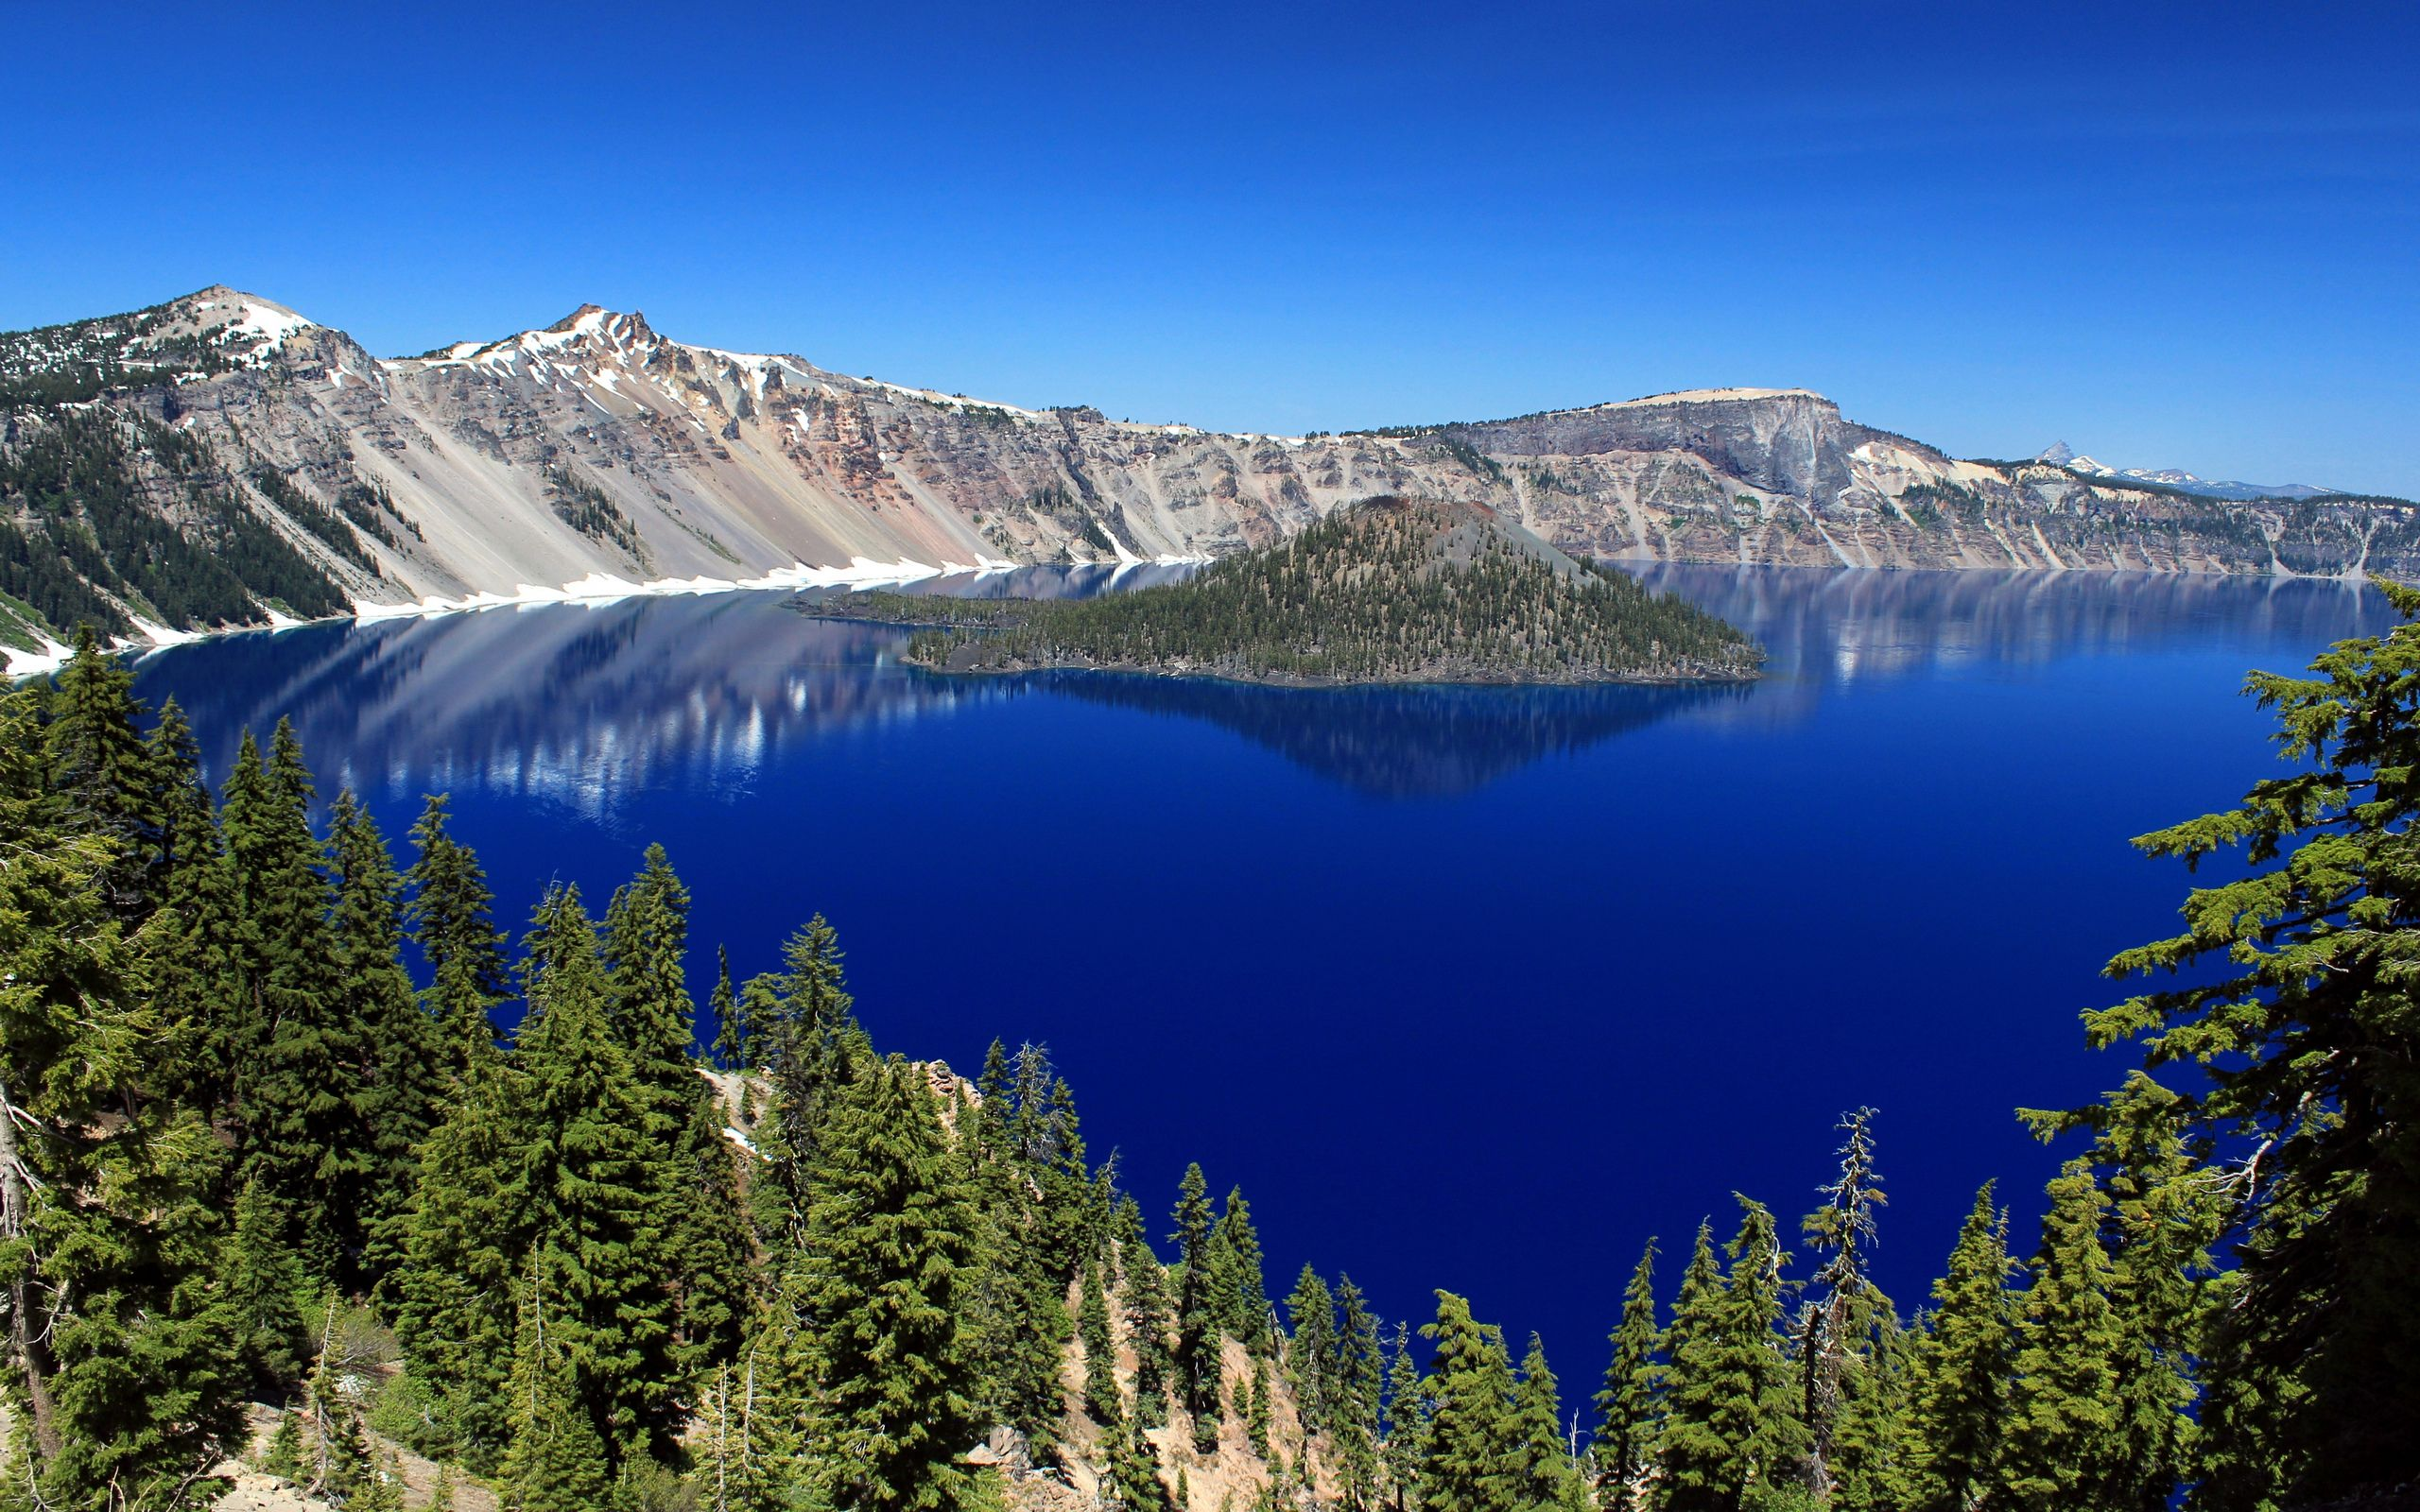 HD Crater Lake Wallpaper Download Free National - 10 cool landmarks in crater lake national park